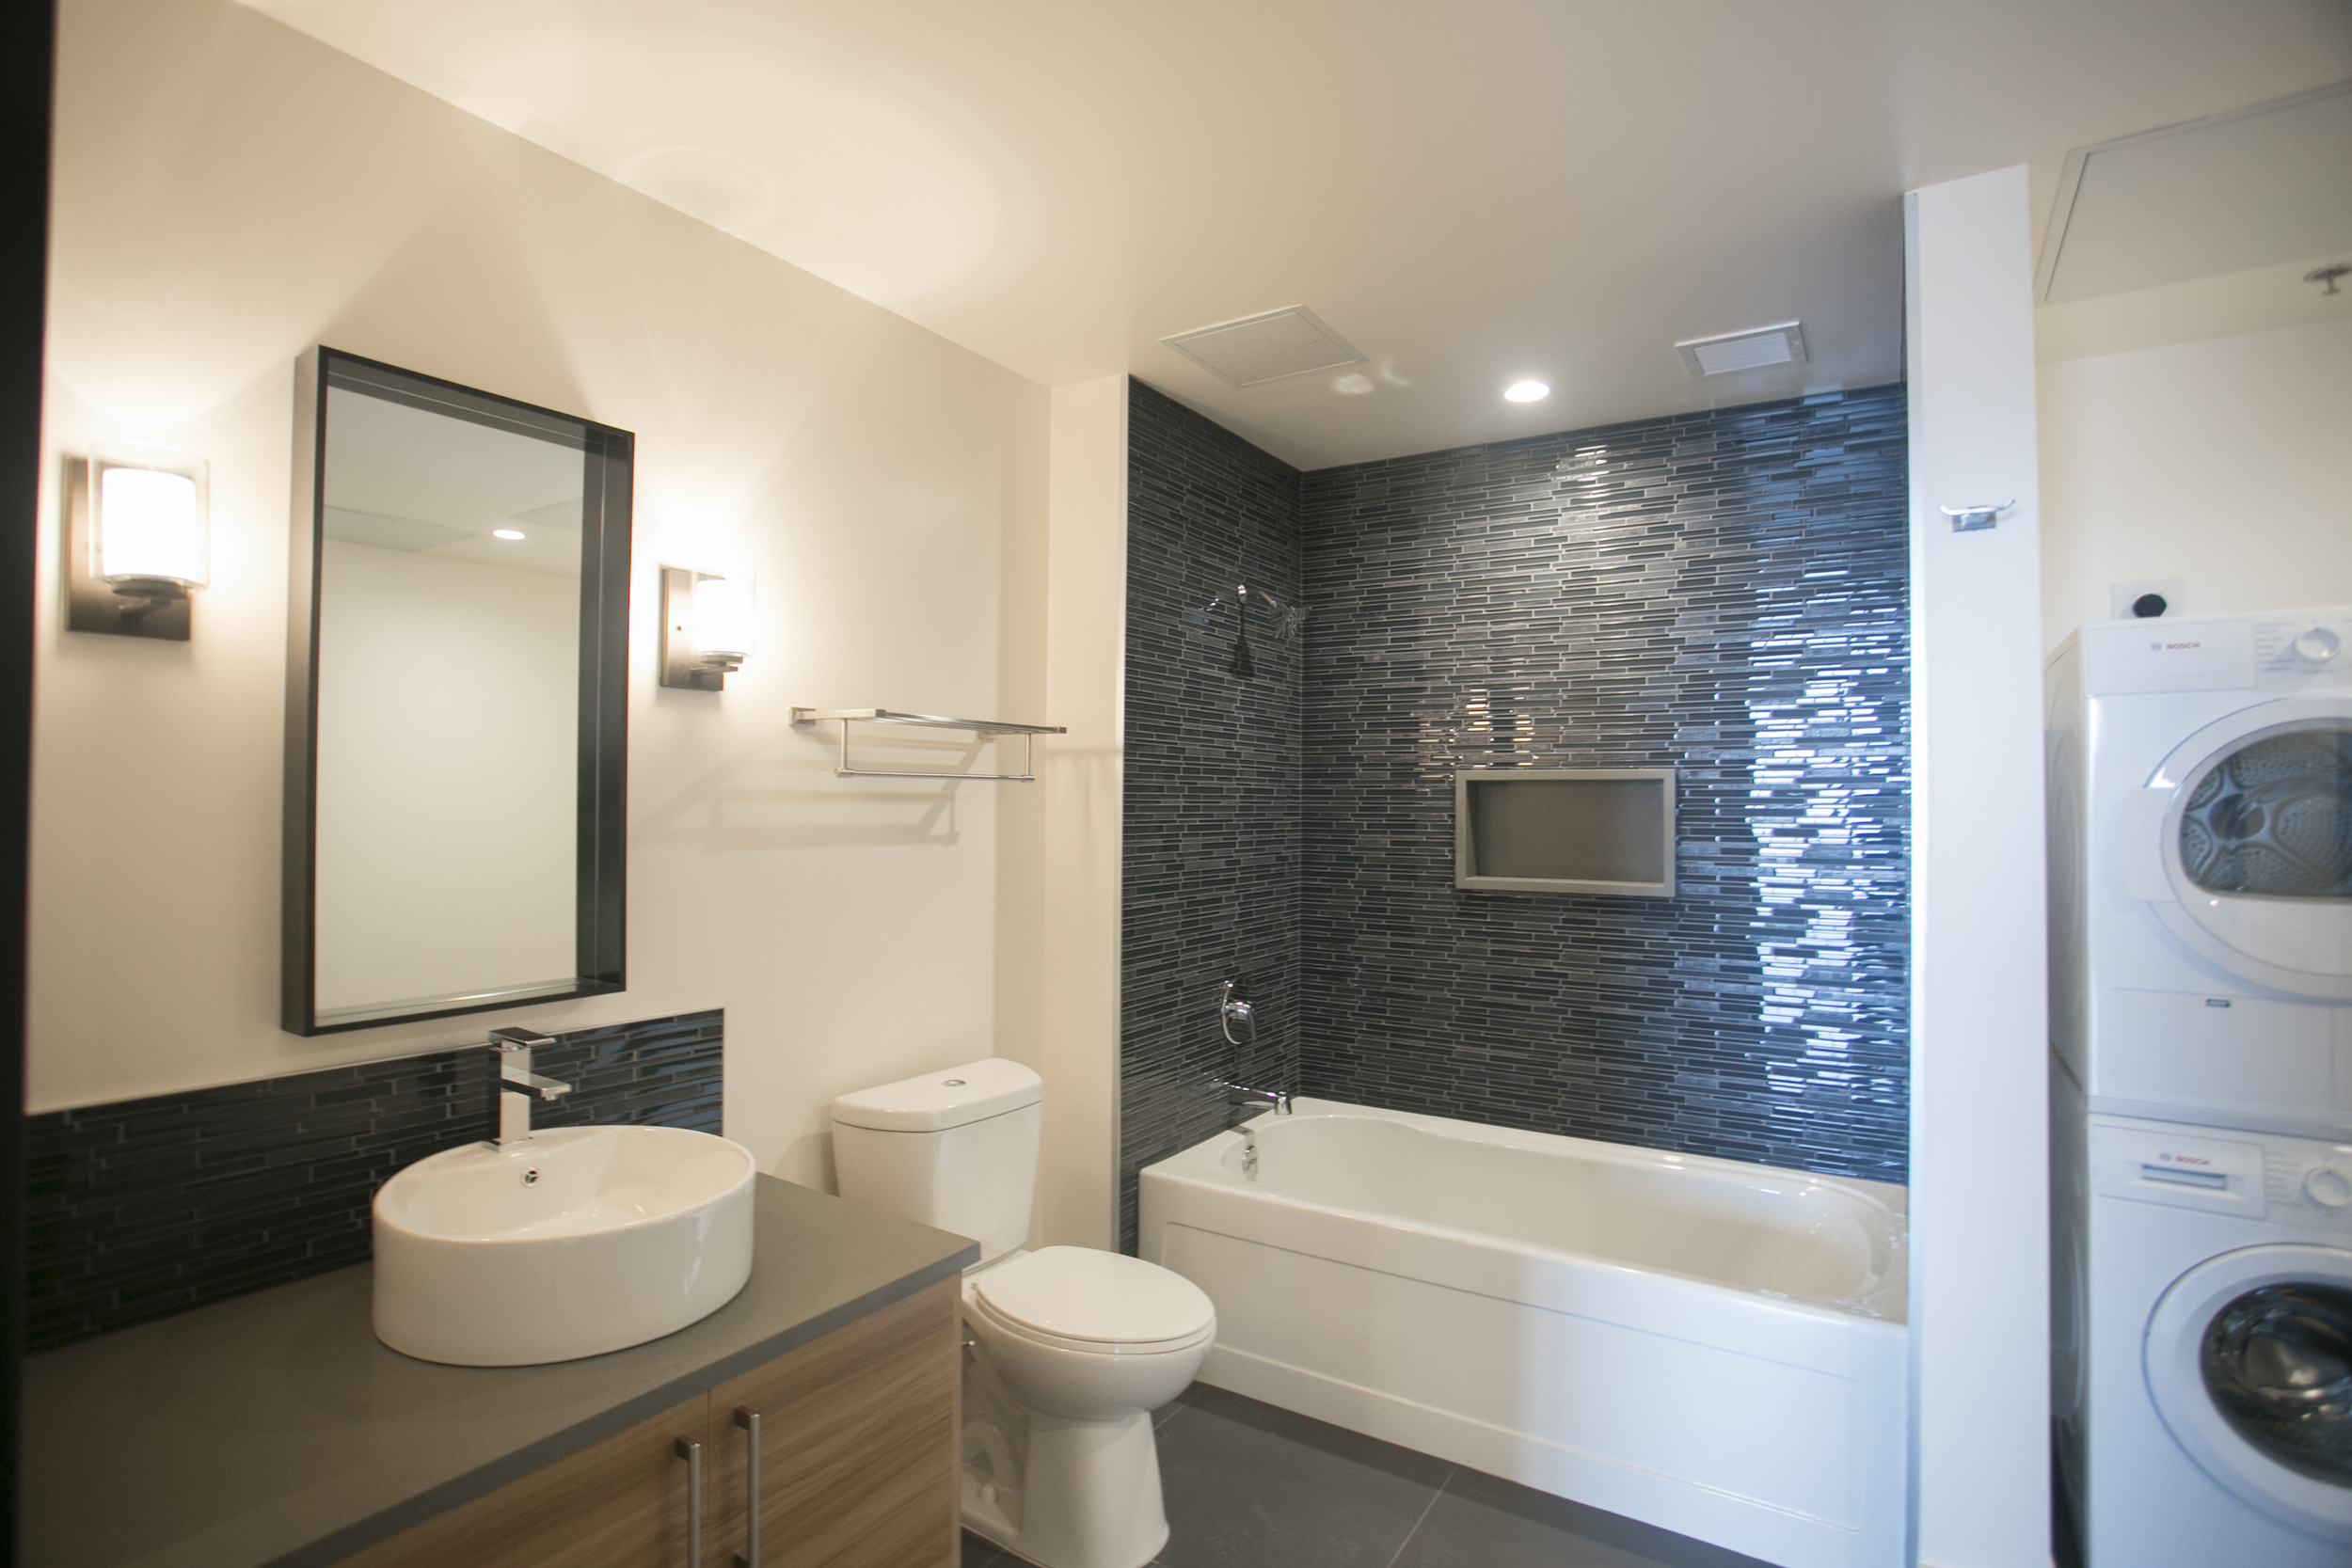 Bathroom and Private Washer and Dryer